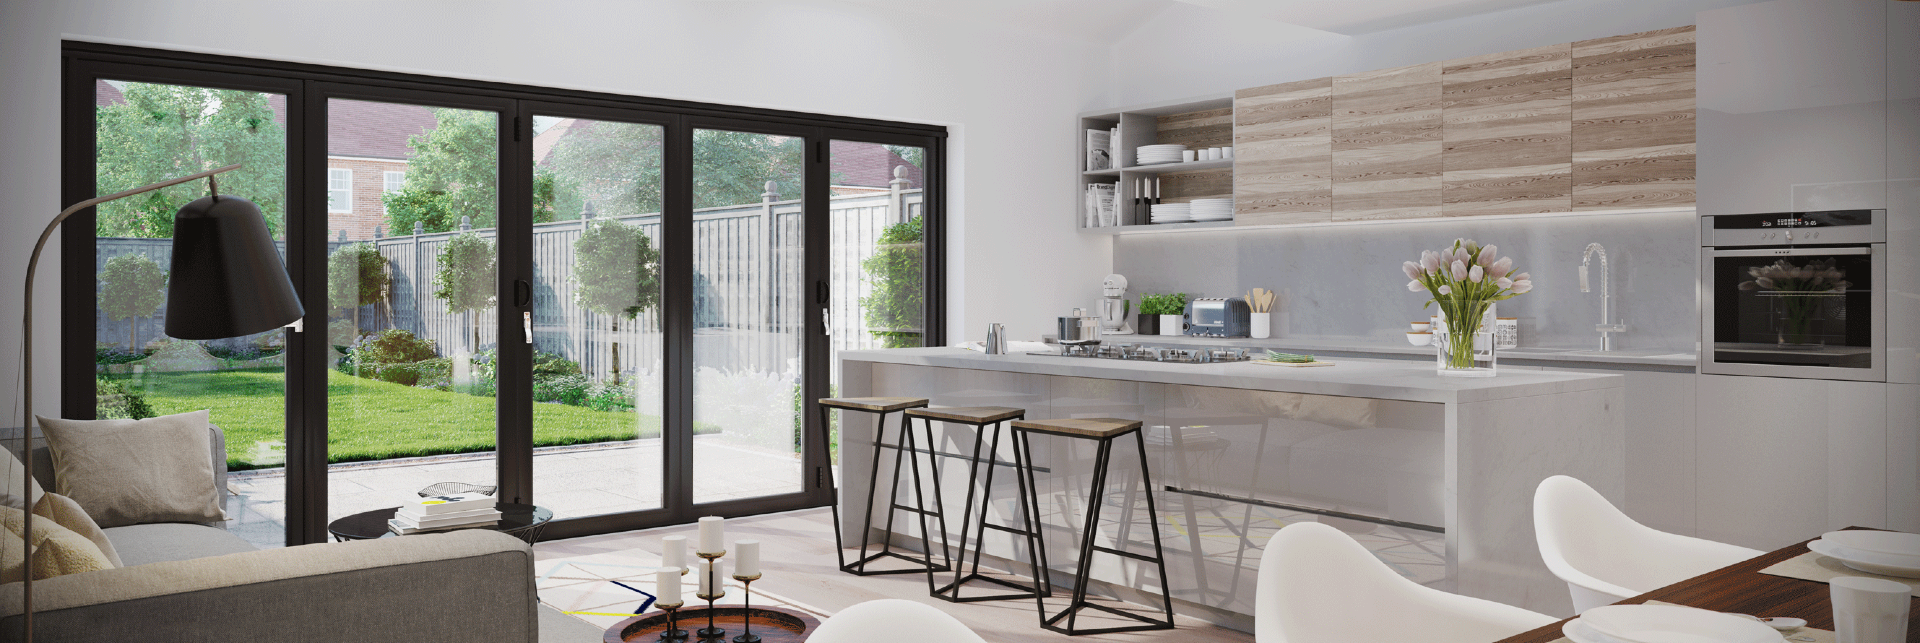 Why Bi Folding Doors Are Becoming the Must Have Home Improvements